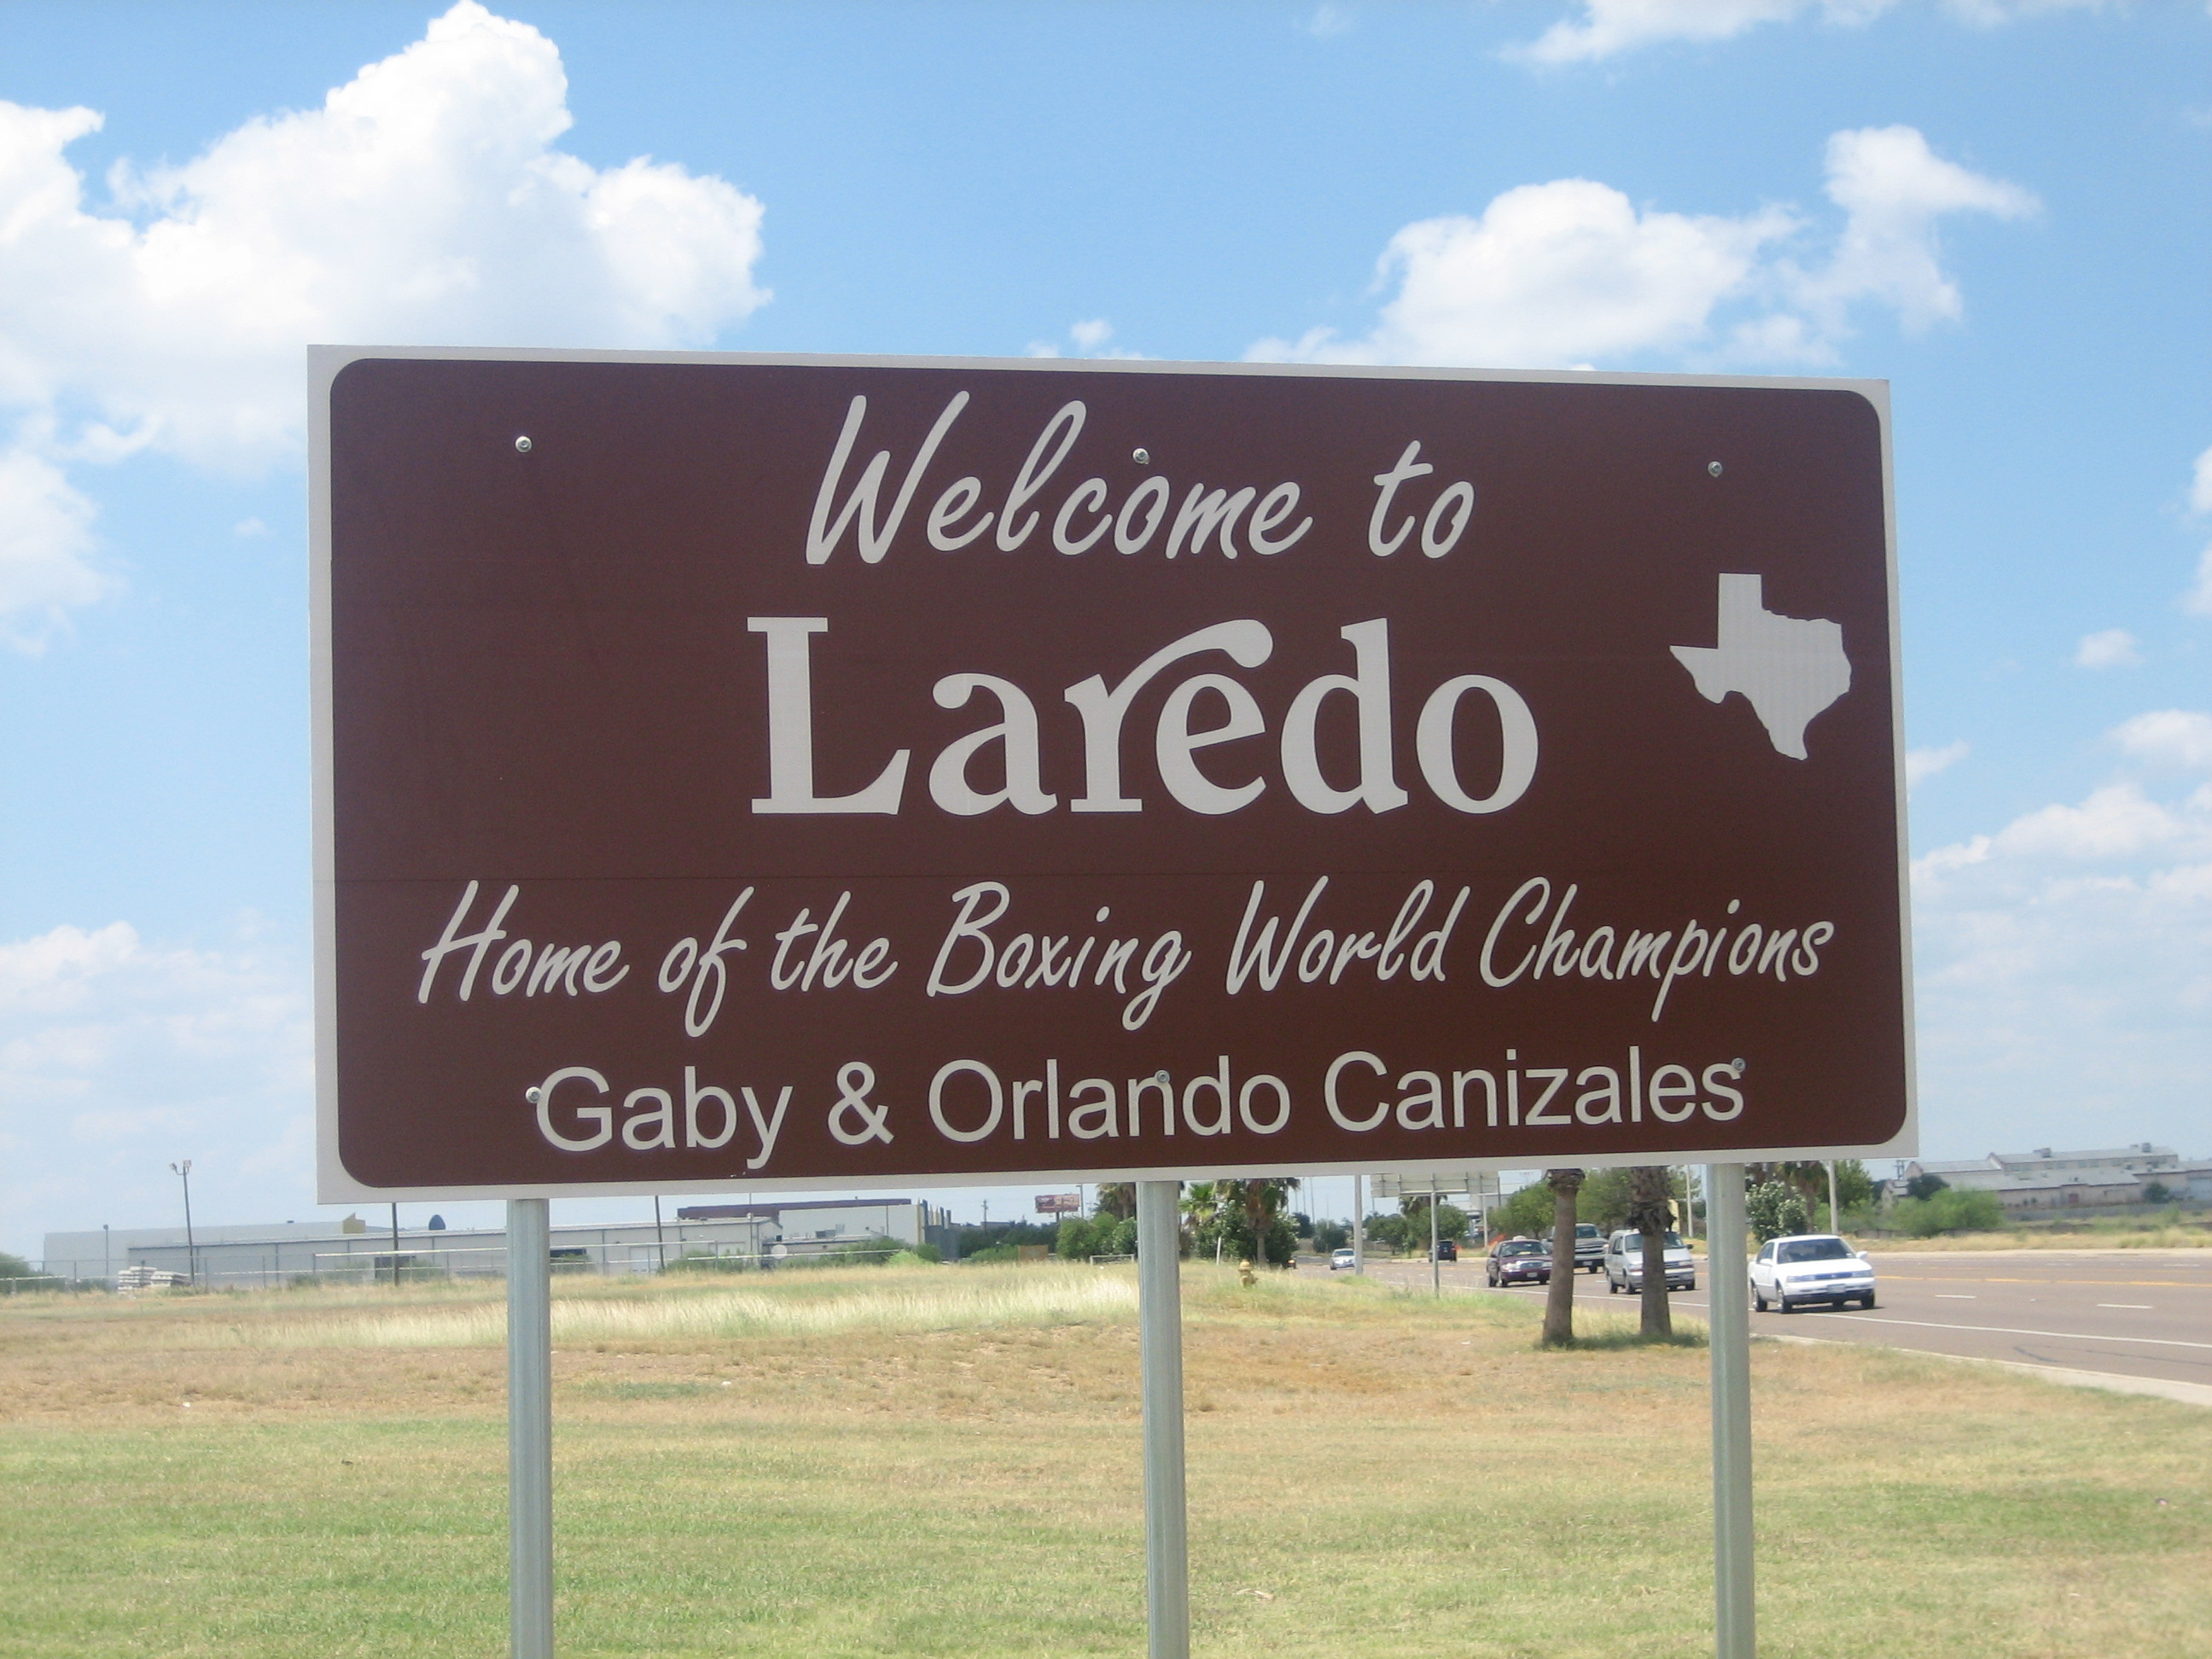 Seems brilliant night clubs laredo tx are